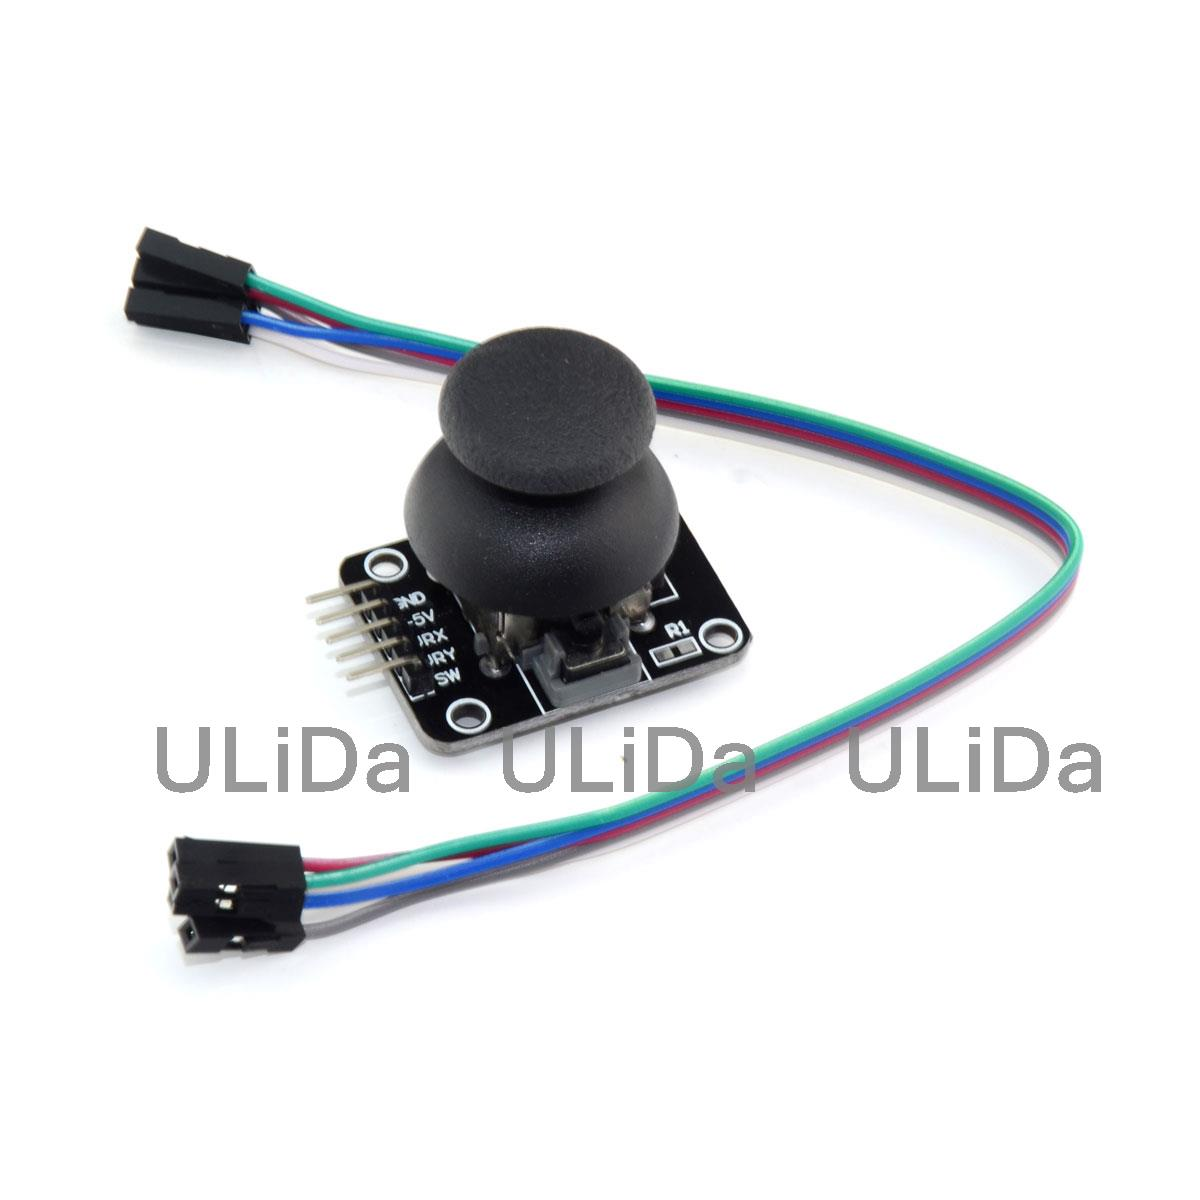 Dual-axis Xy Joystick Module Ps2 Joystick Control Lever Sensor For Arduino Diy Kit Hot Sale 50-70% OFF